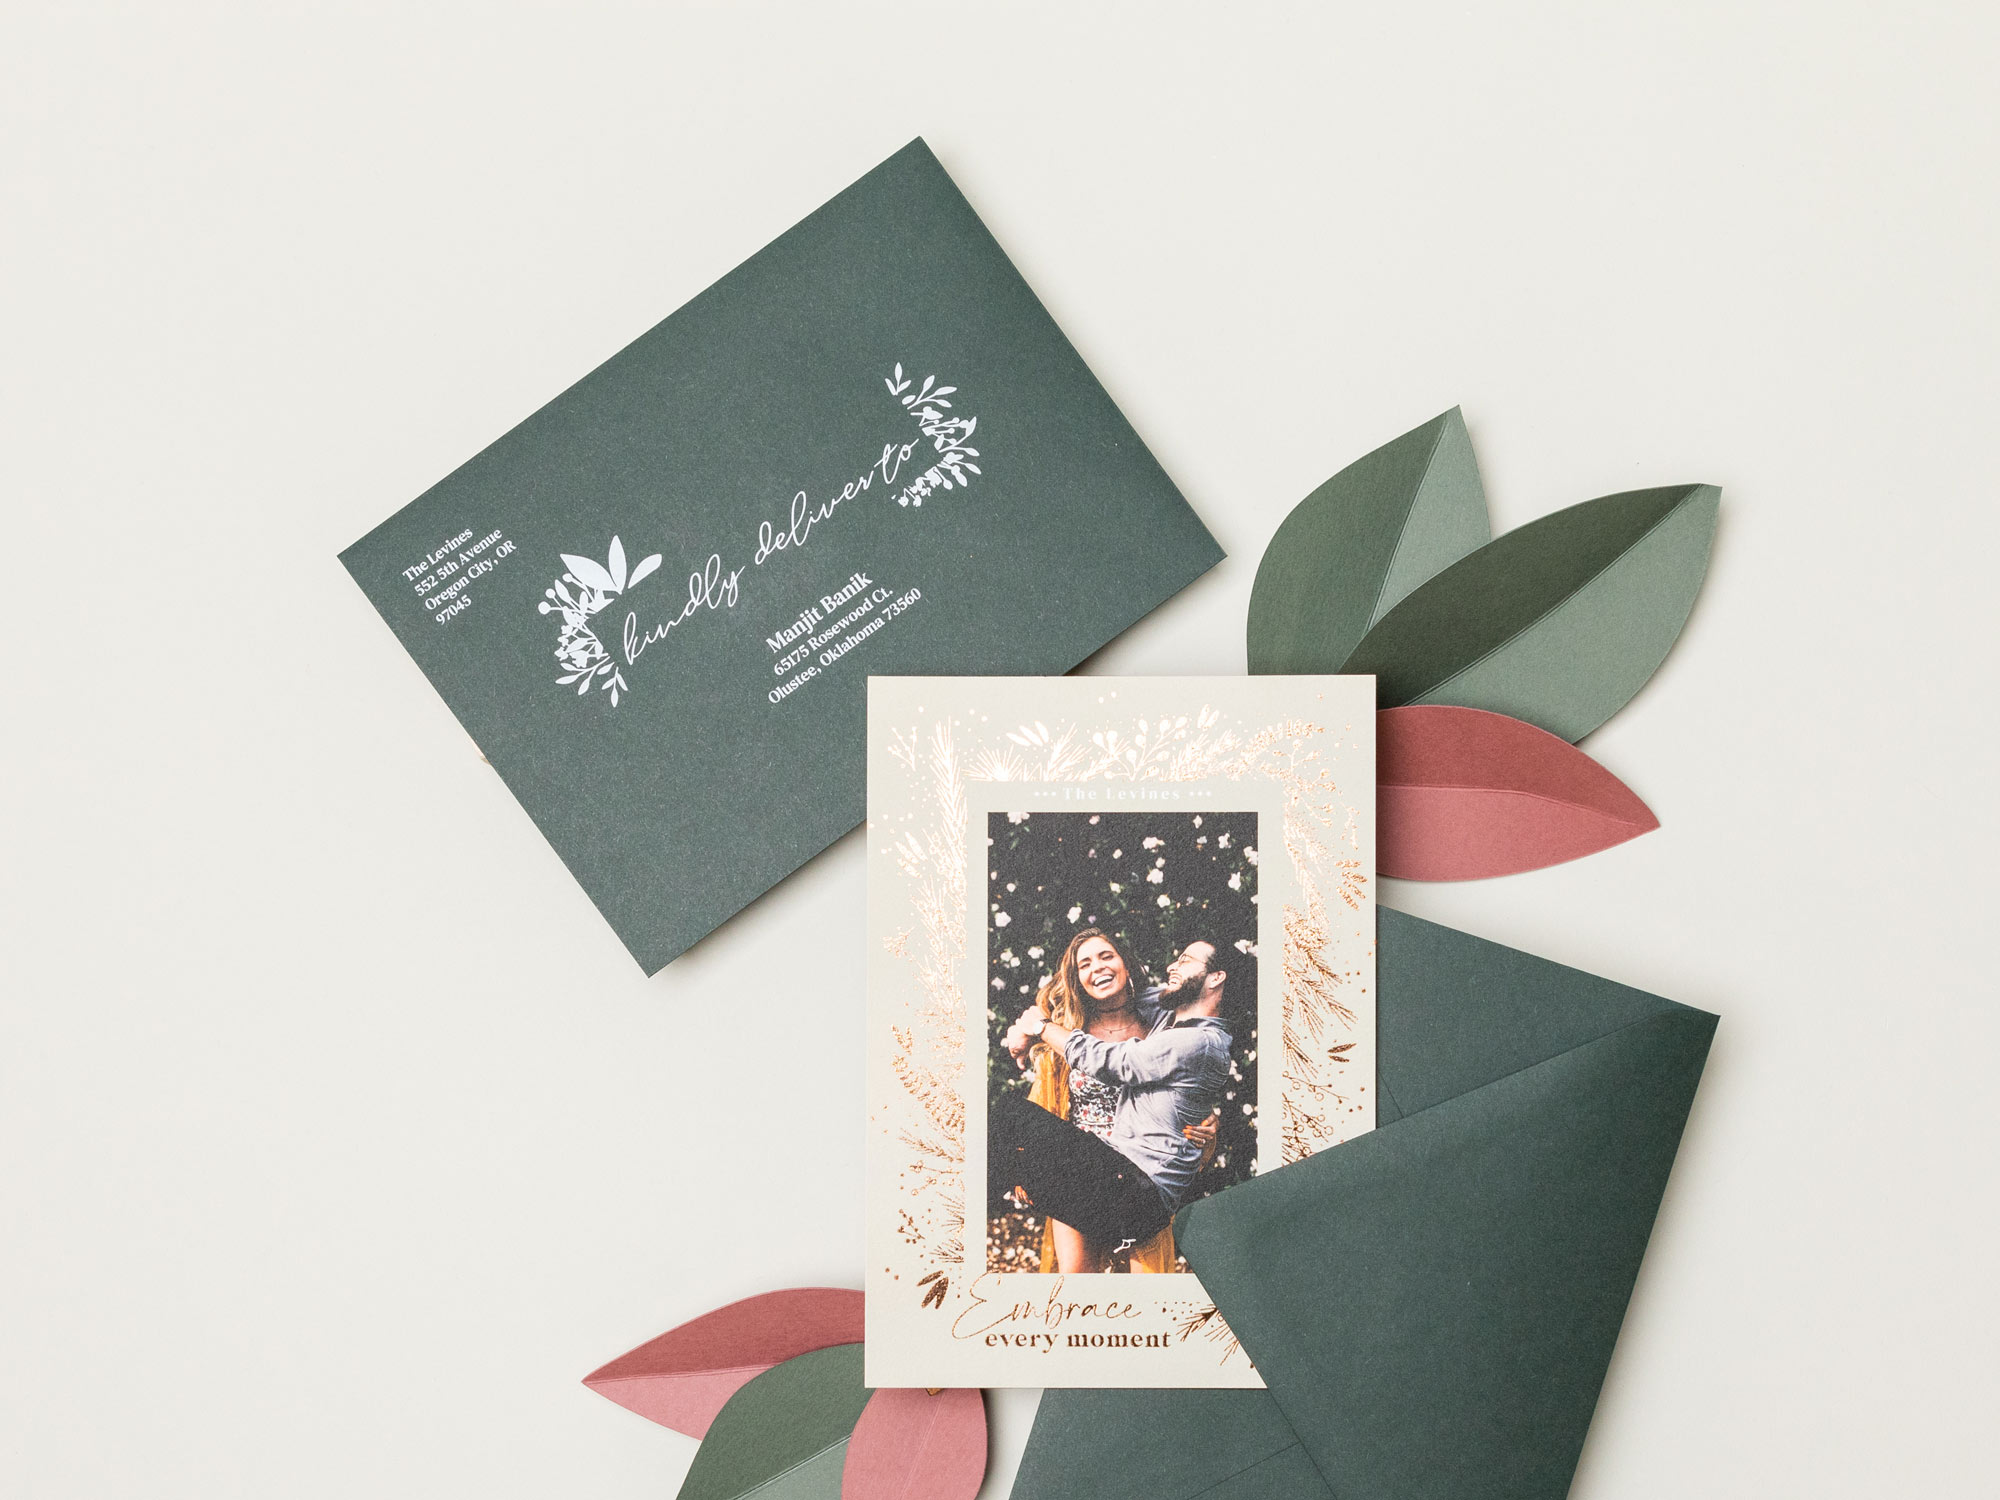 Recipient address printing in white ink on dark green holiday card envelopes by WHCC